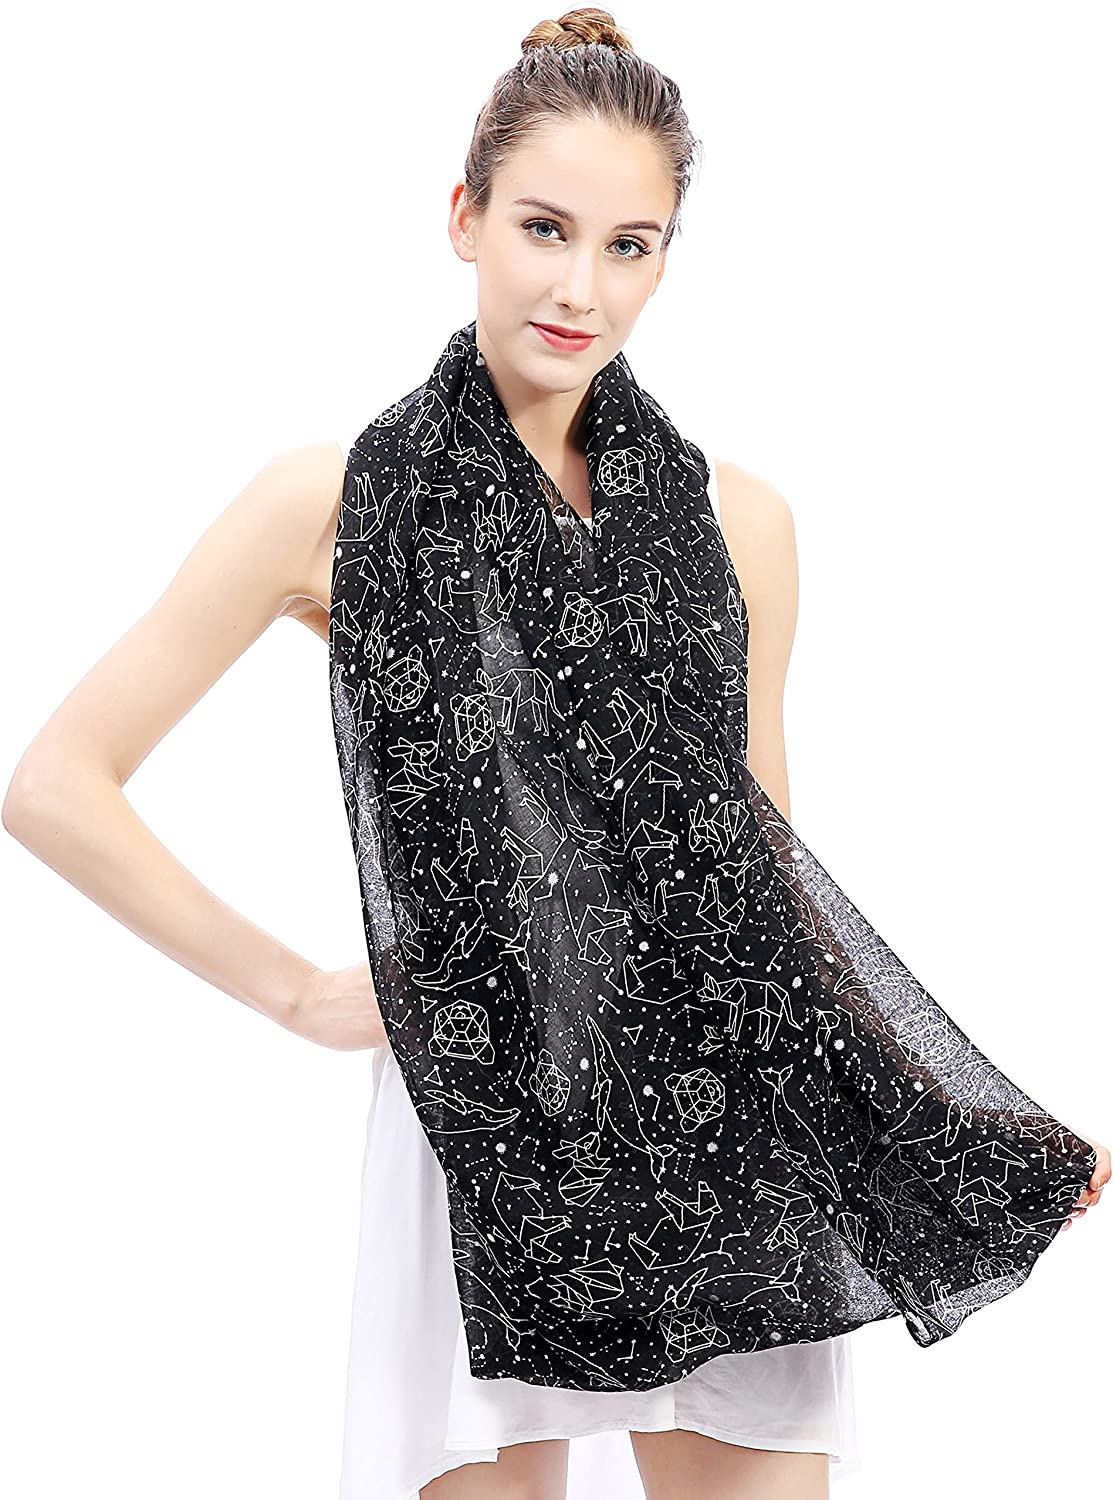 Lina /& Lily Constellation Star Print Womens Infinity Loop Scarf Navy Blue